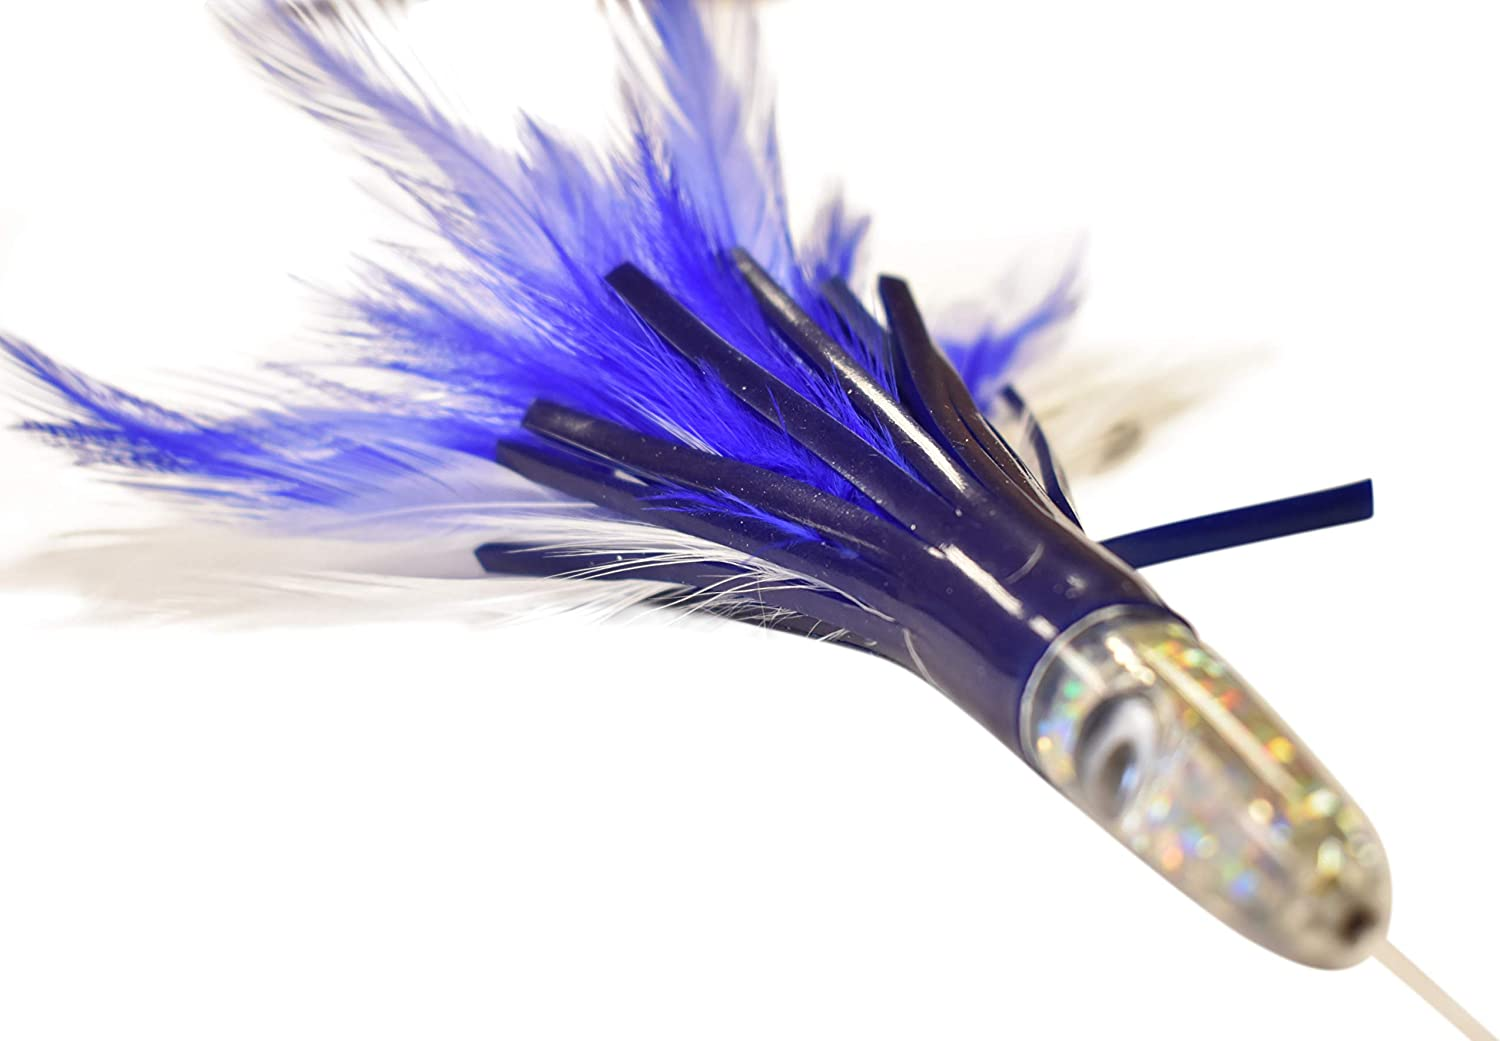 Blue /& White Feather Duster Rigged Saltwater Fishing Lure